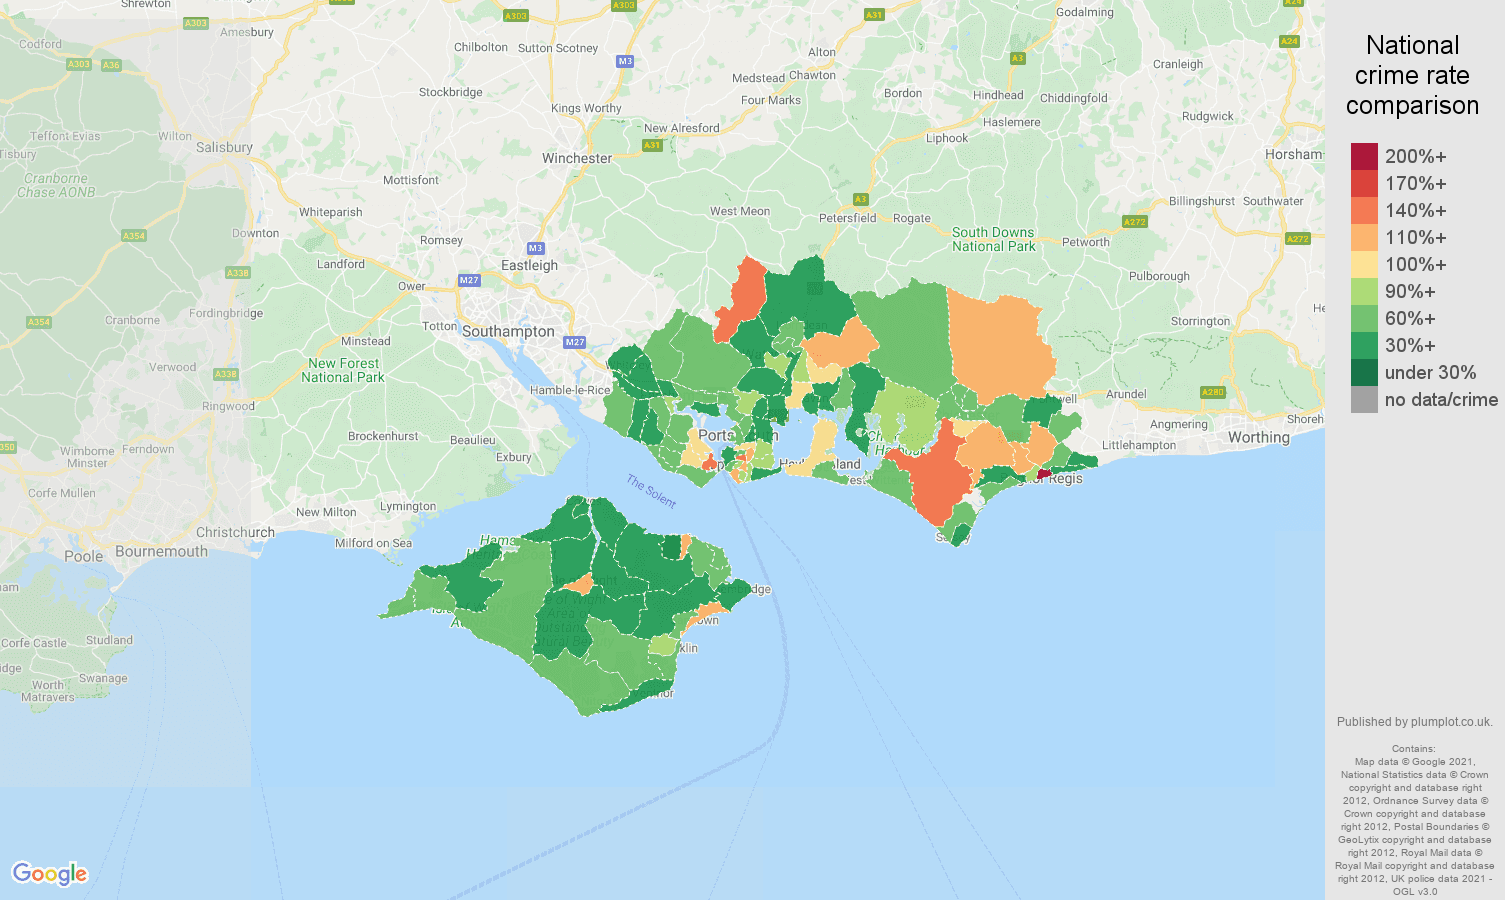 Portsmouth other theft crime rate comparison map